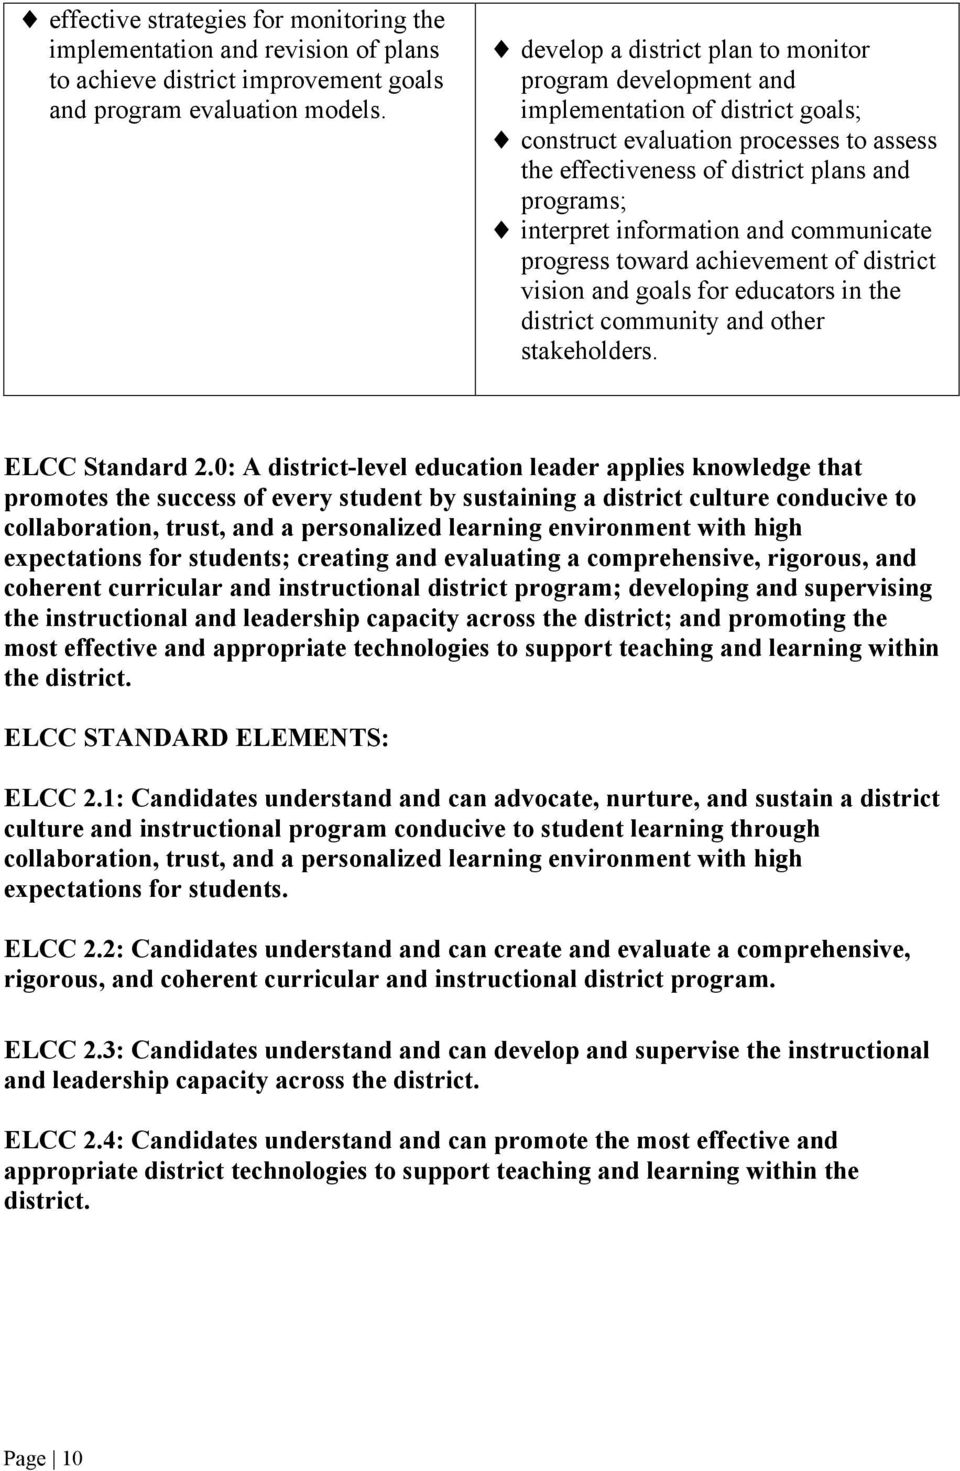 information and communicate progress toward achievement of district vision and goals for educators in the district community and other stakeholders. ELCC Standard 2.